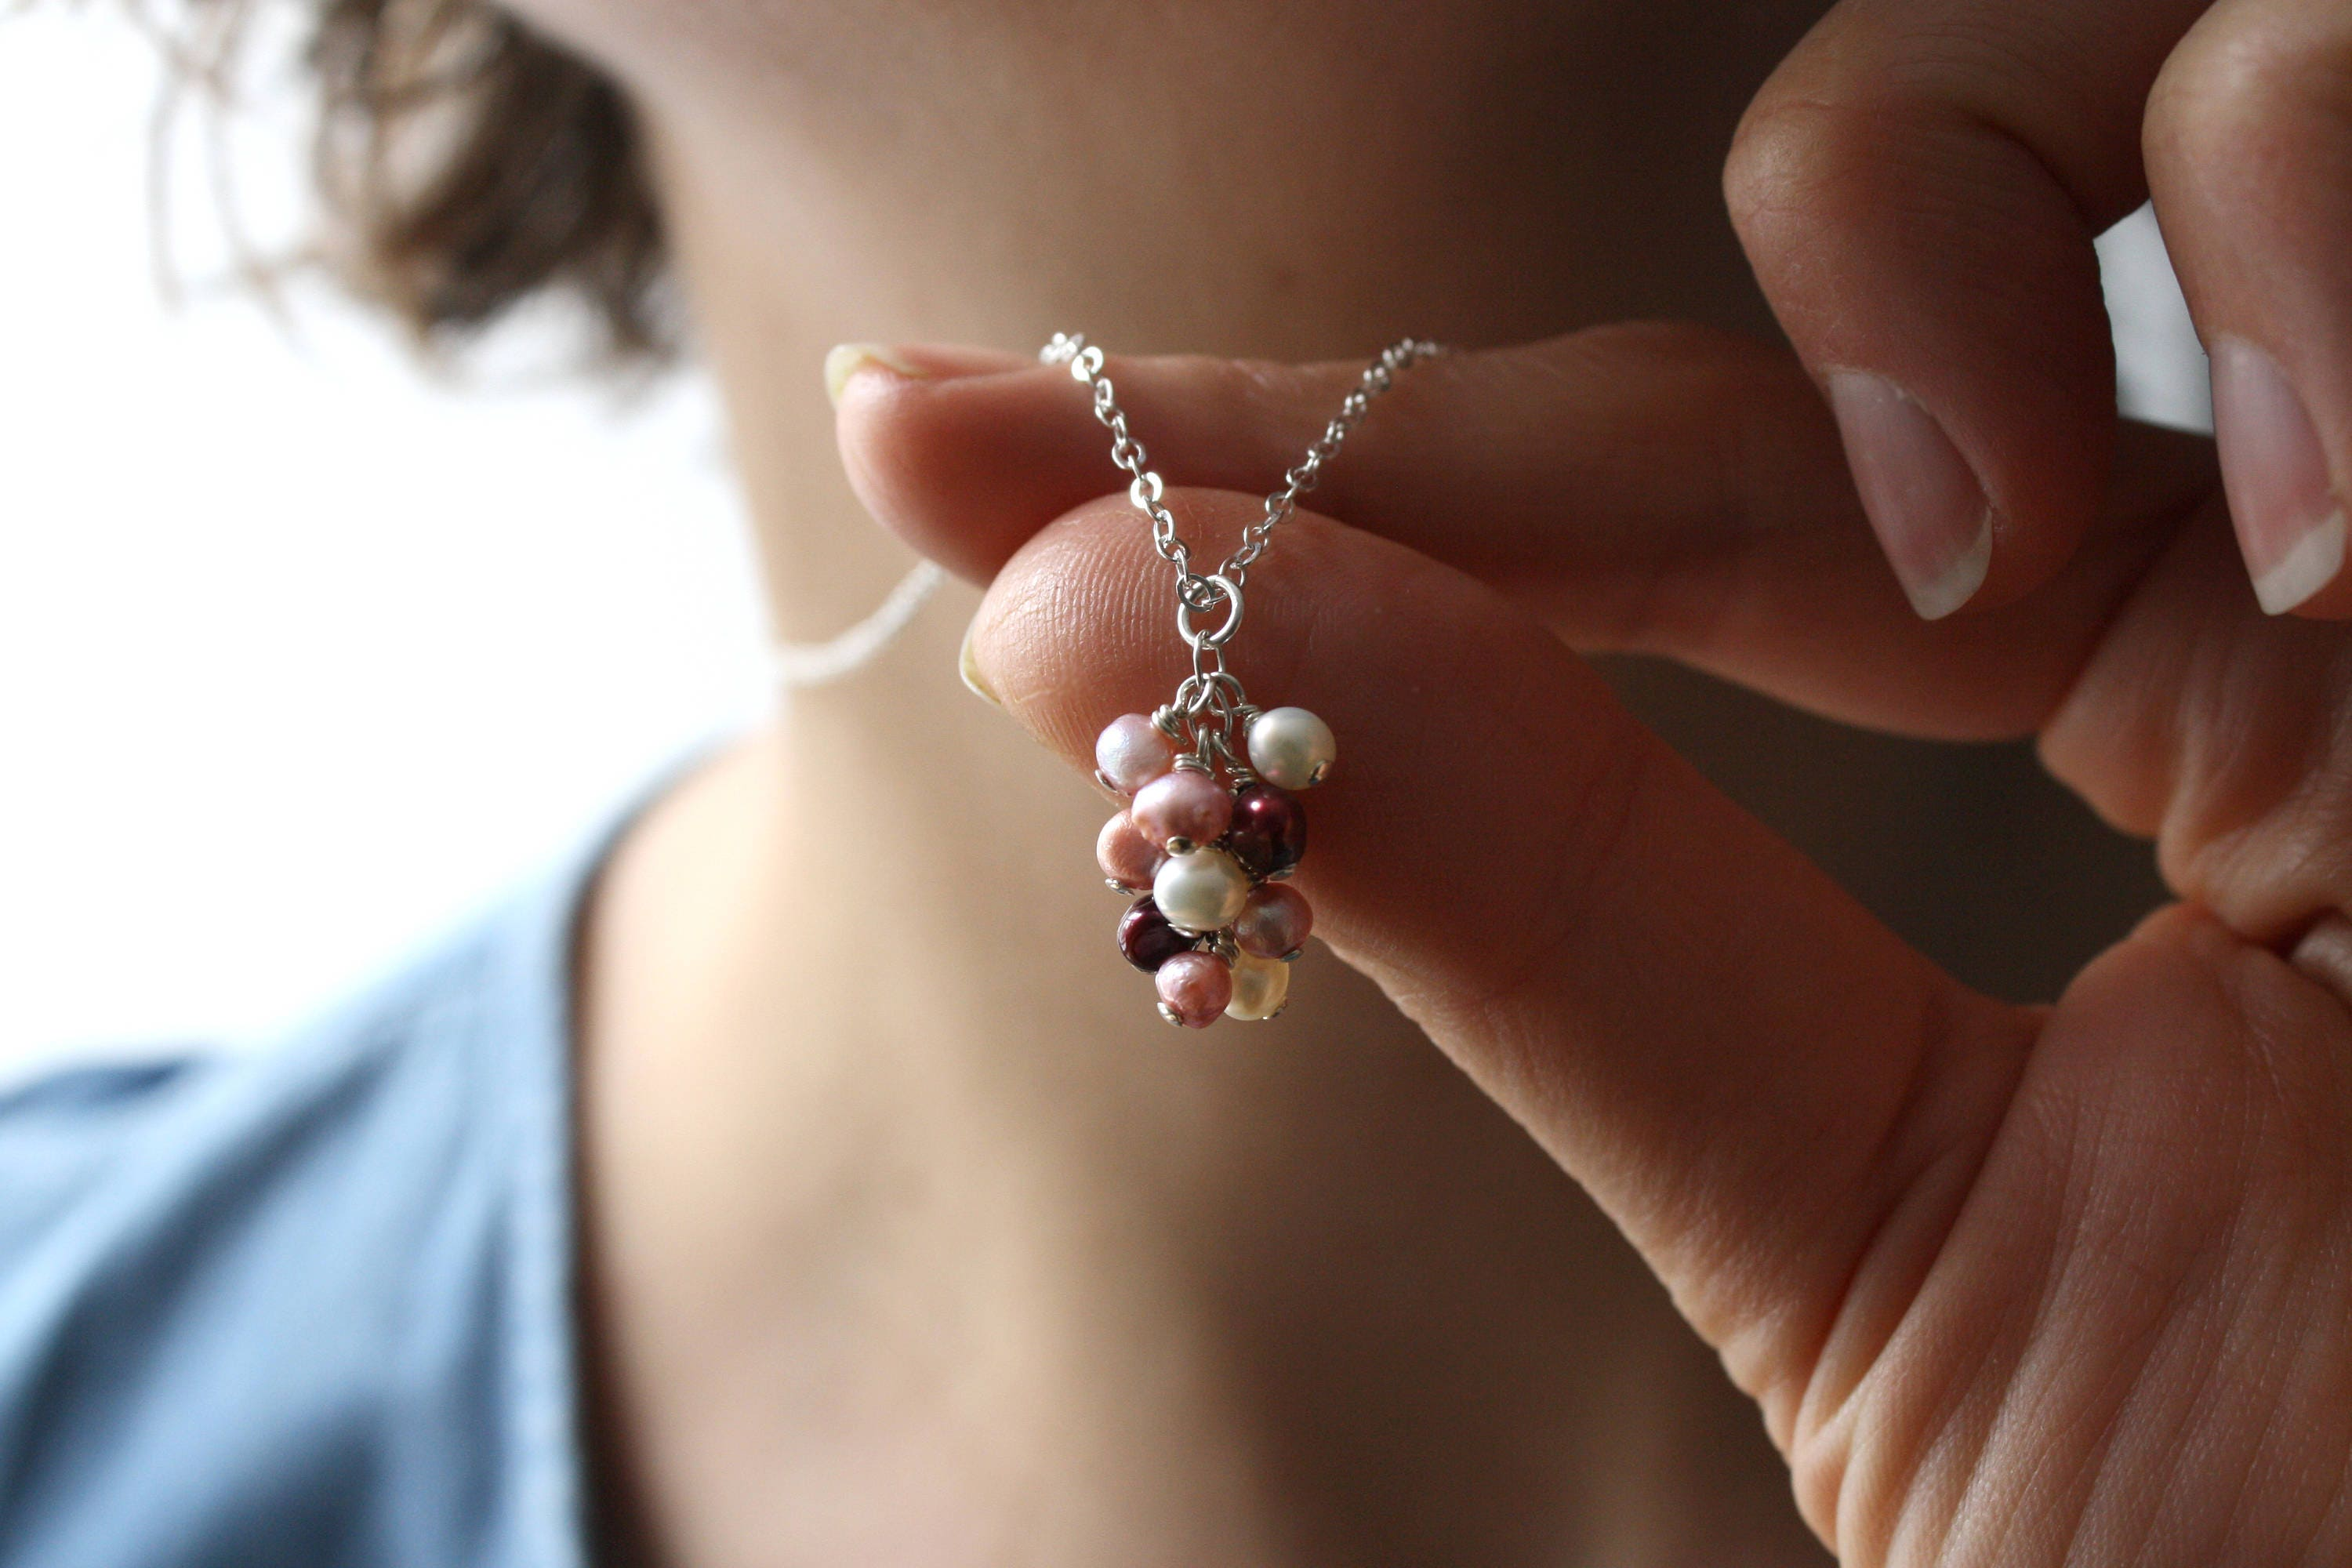 id necklaces camellia new at cc jewelry chanel pink charm gold gripoix seoul flower pearl org glass v necklace beaded